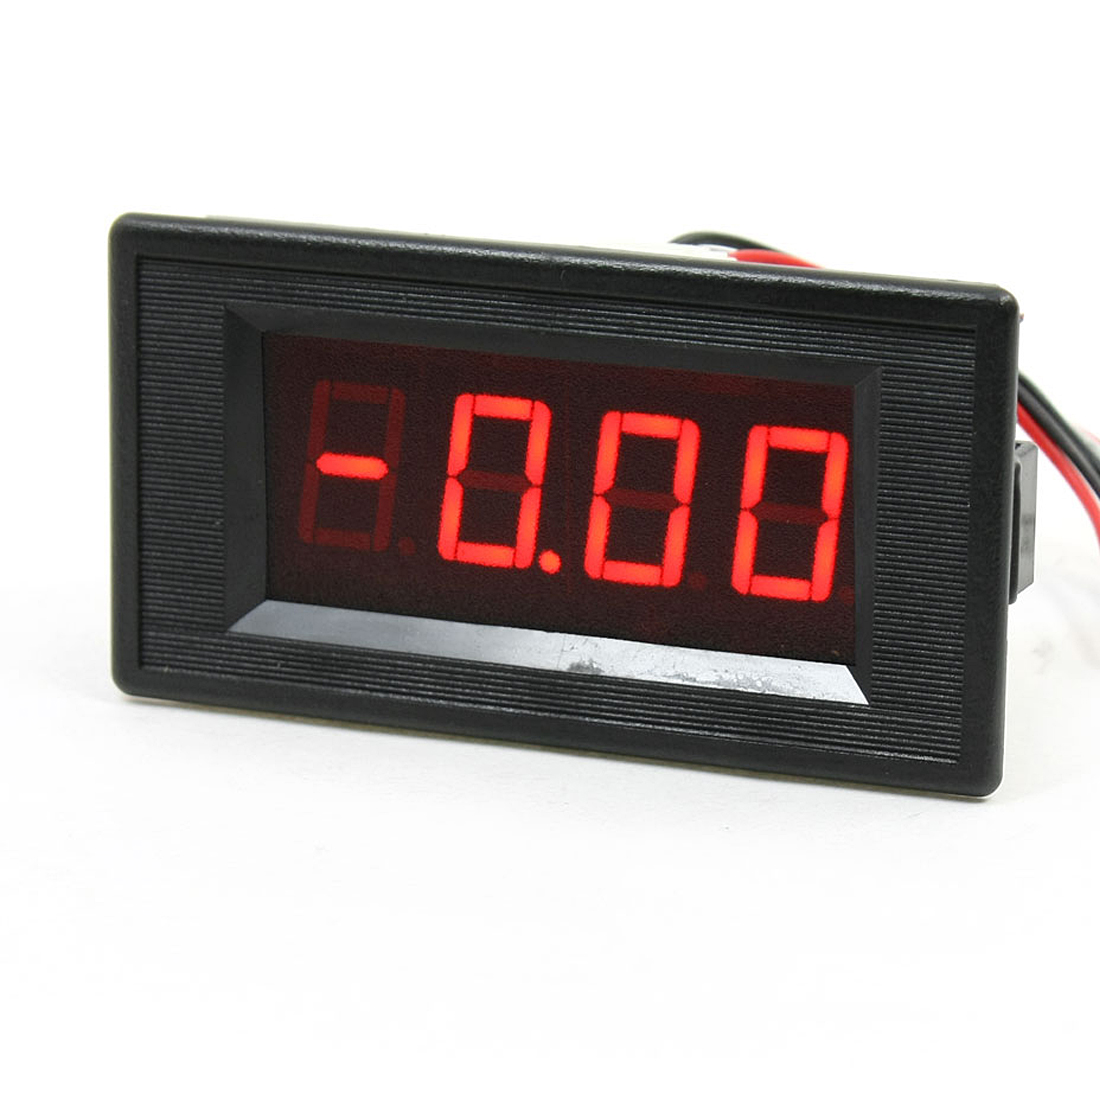 Red LED Display 4 Digit DC0-20V Digital Panel Meter Voltmeter